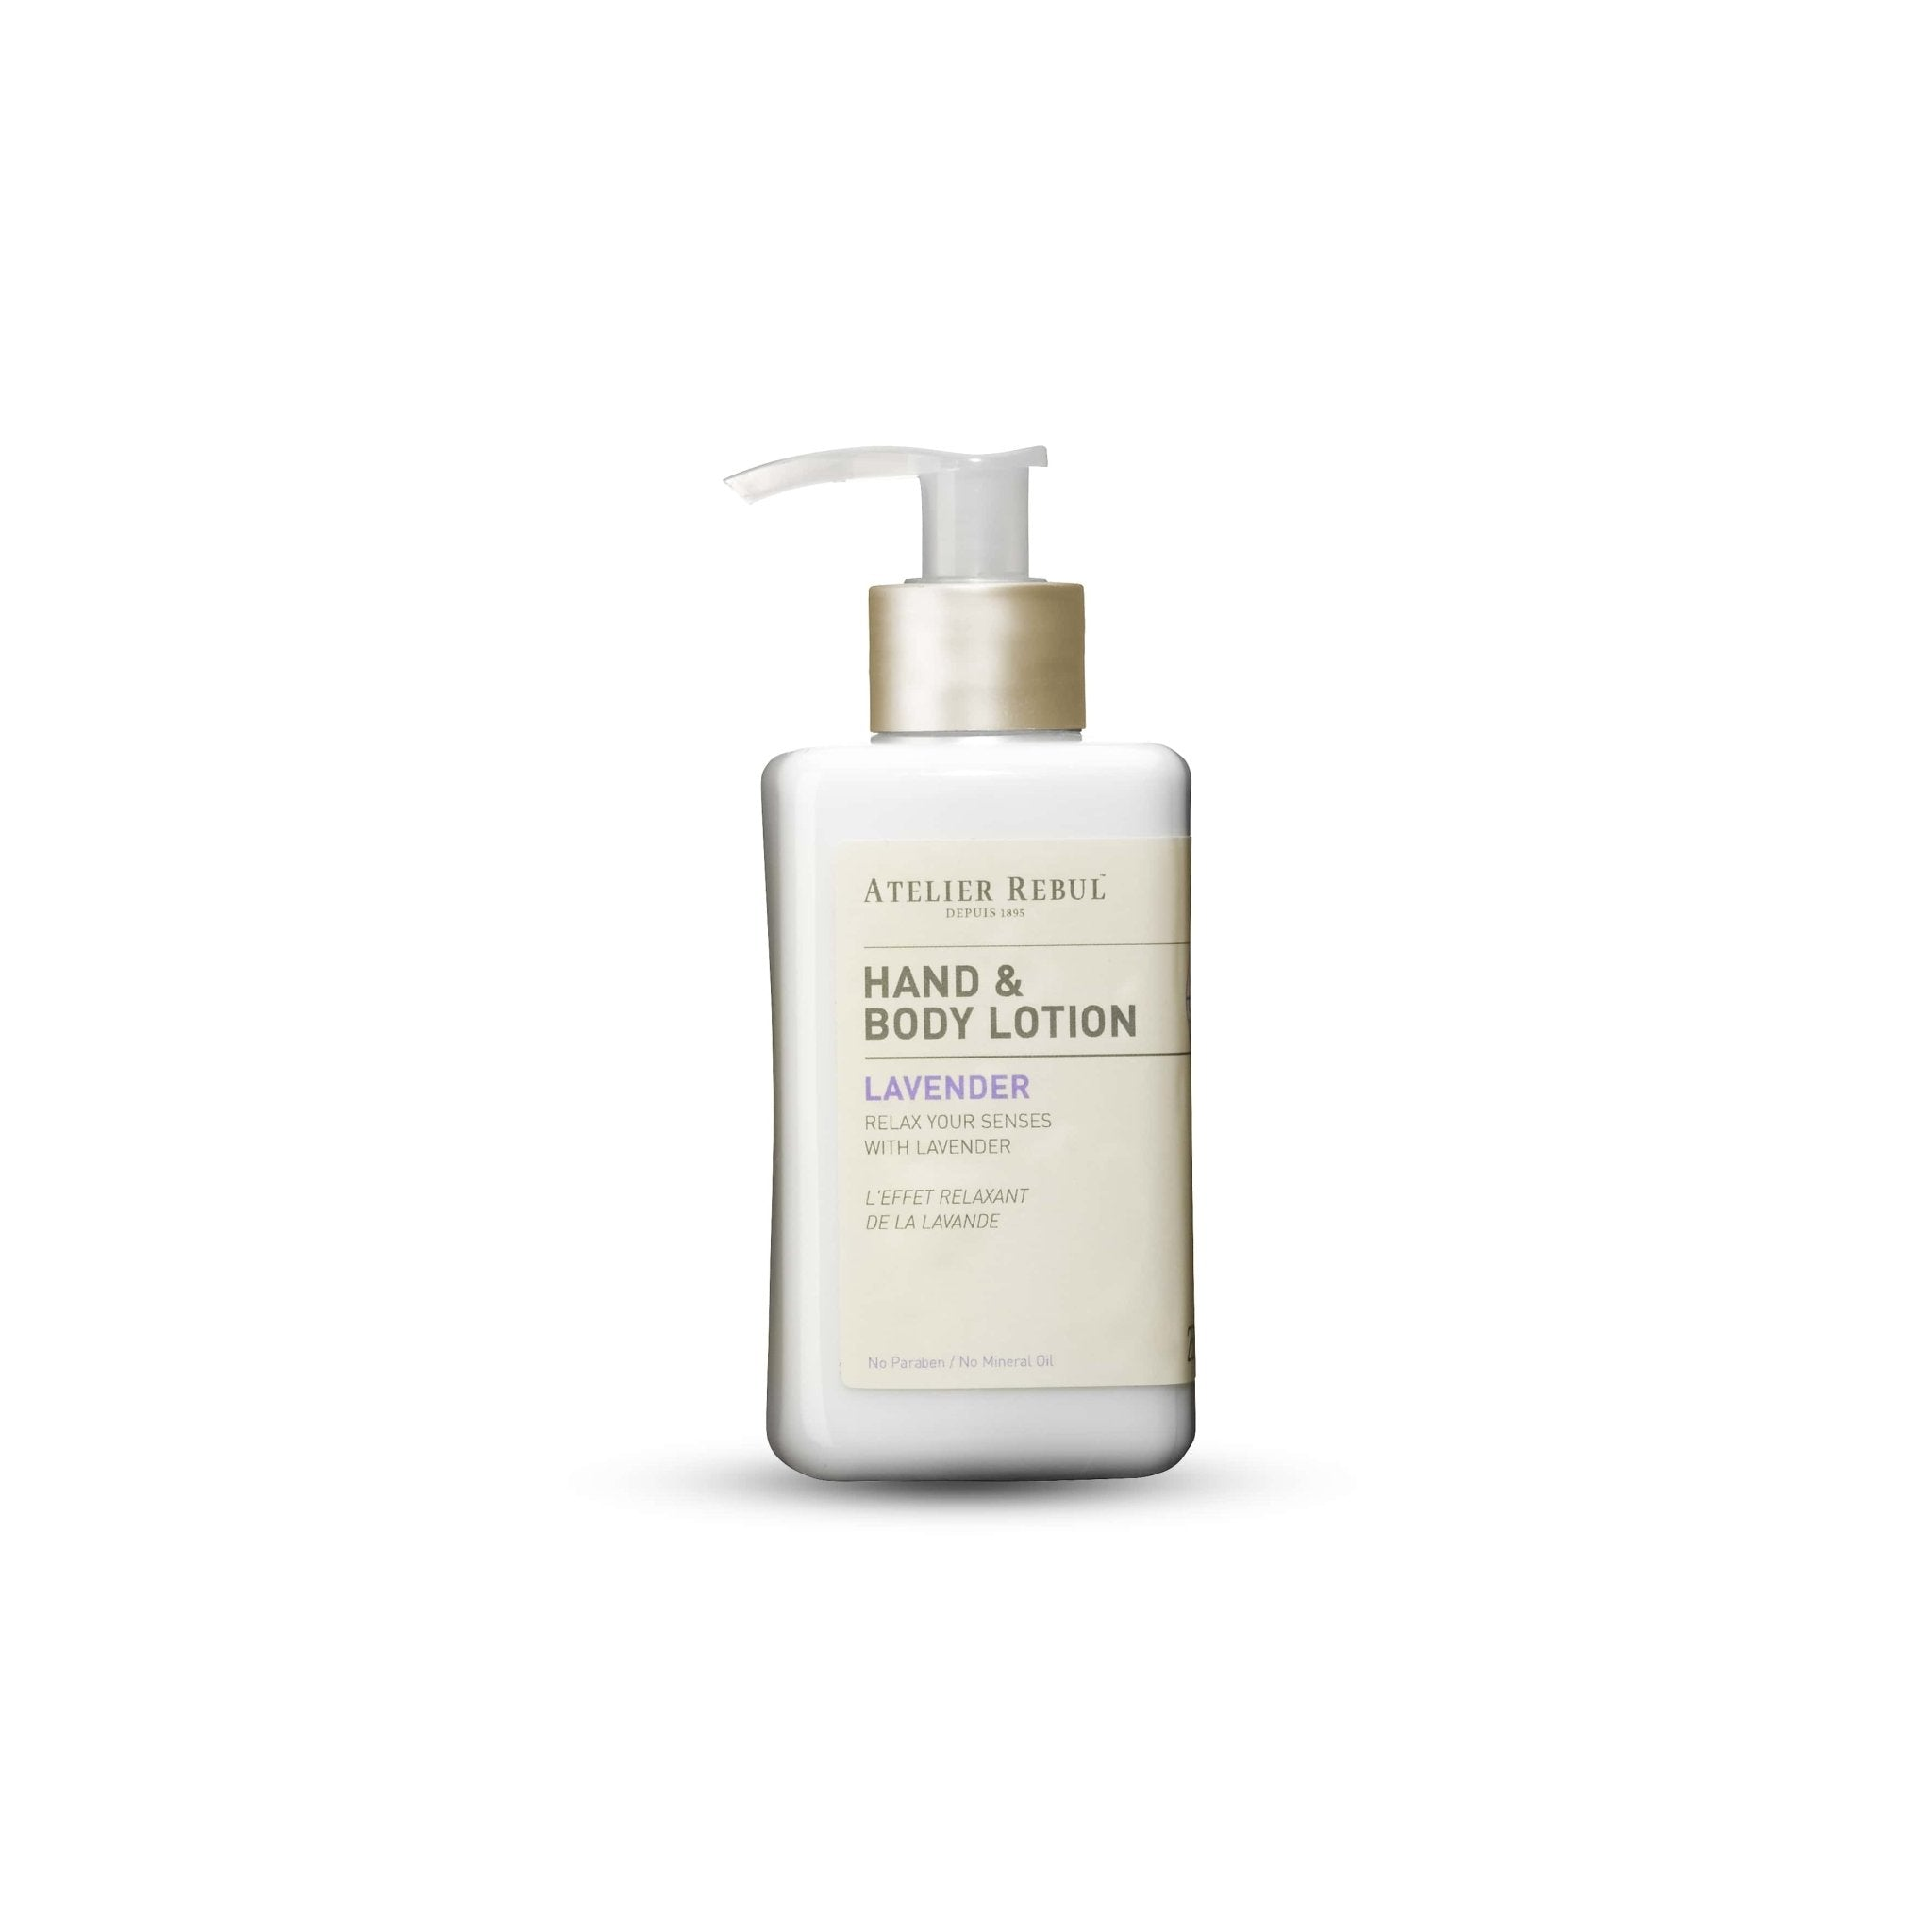 ATELIER REBUL -HAND & BODY LOTION / LAVANDER - 250ML